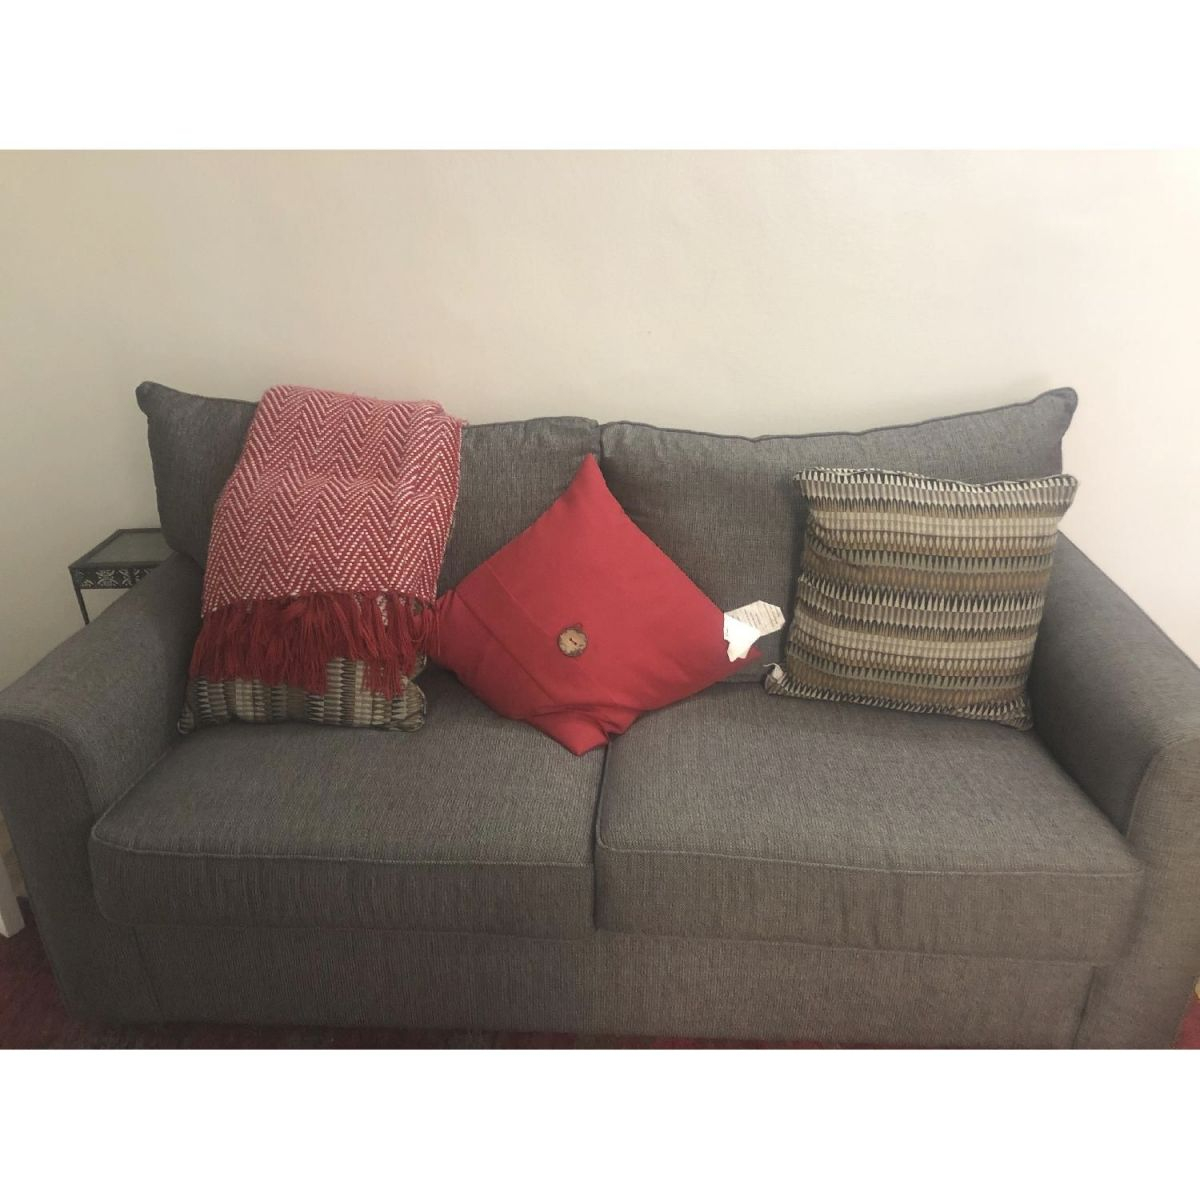 Raymour & Flanigan Grey Full Sleeper Sofa W/ Throw Pillows intended for Raymour And Flanigan Sleeper Sofa